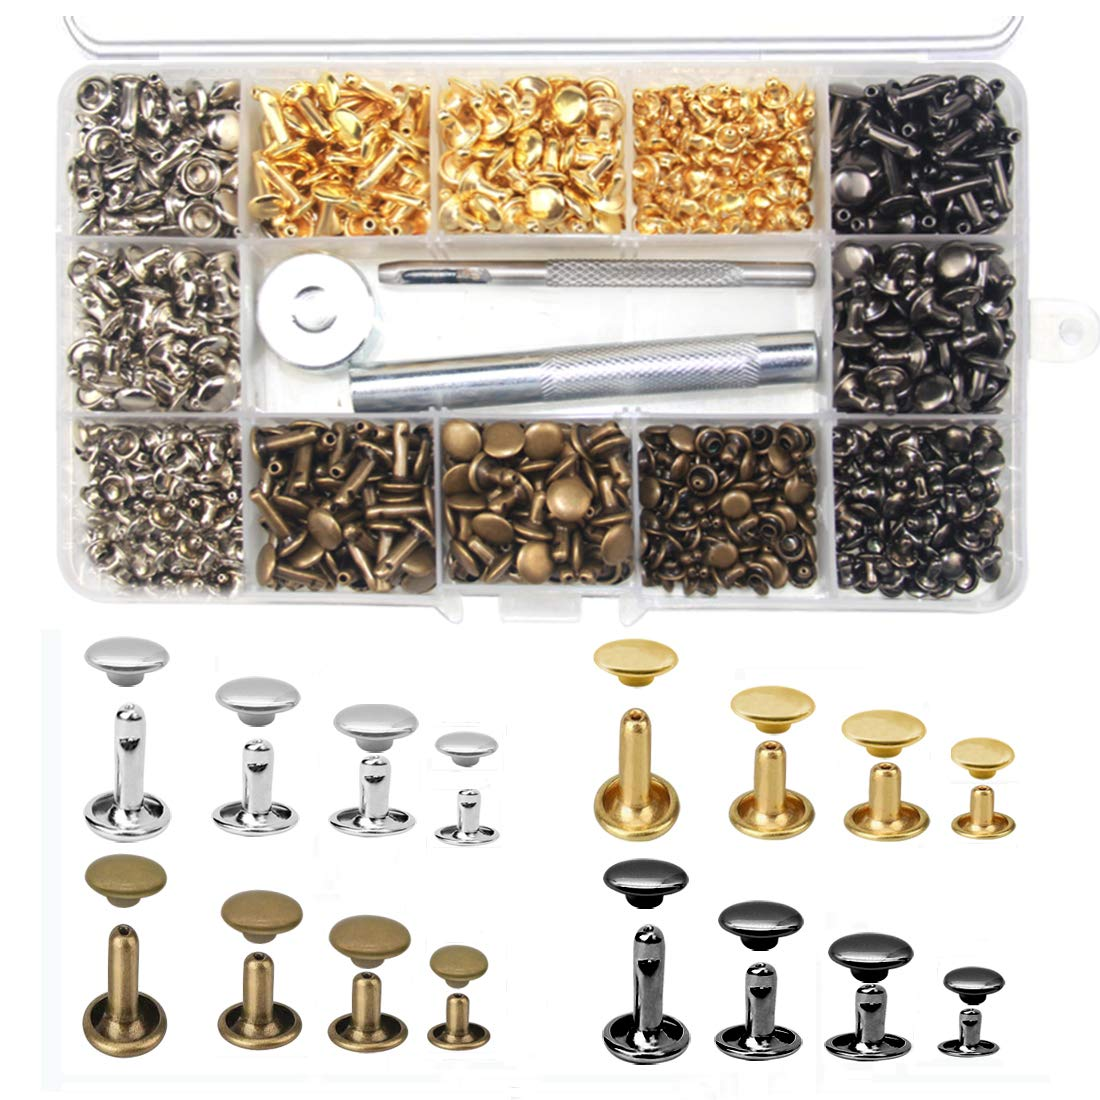 480 Sets 4 Sizes Leather Rivets Double Cap Rivet Buttons Tubular Metal Studs with 3 Fixing Tools Set for DIY Leather Craft Repairs Decoration 4 Colors